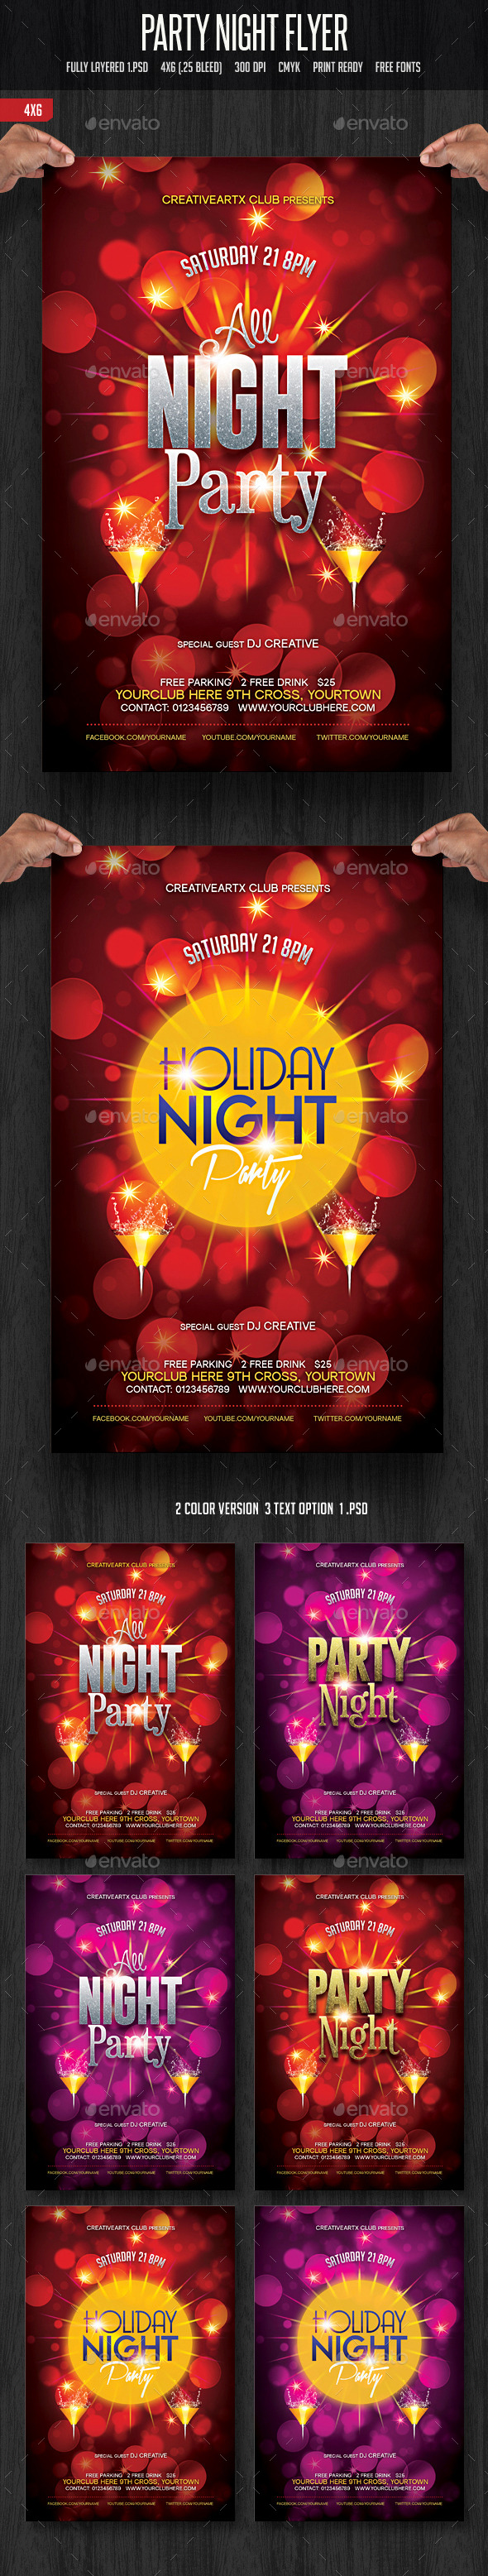 GraphicRiver Party Night Flyer 11784395